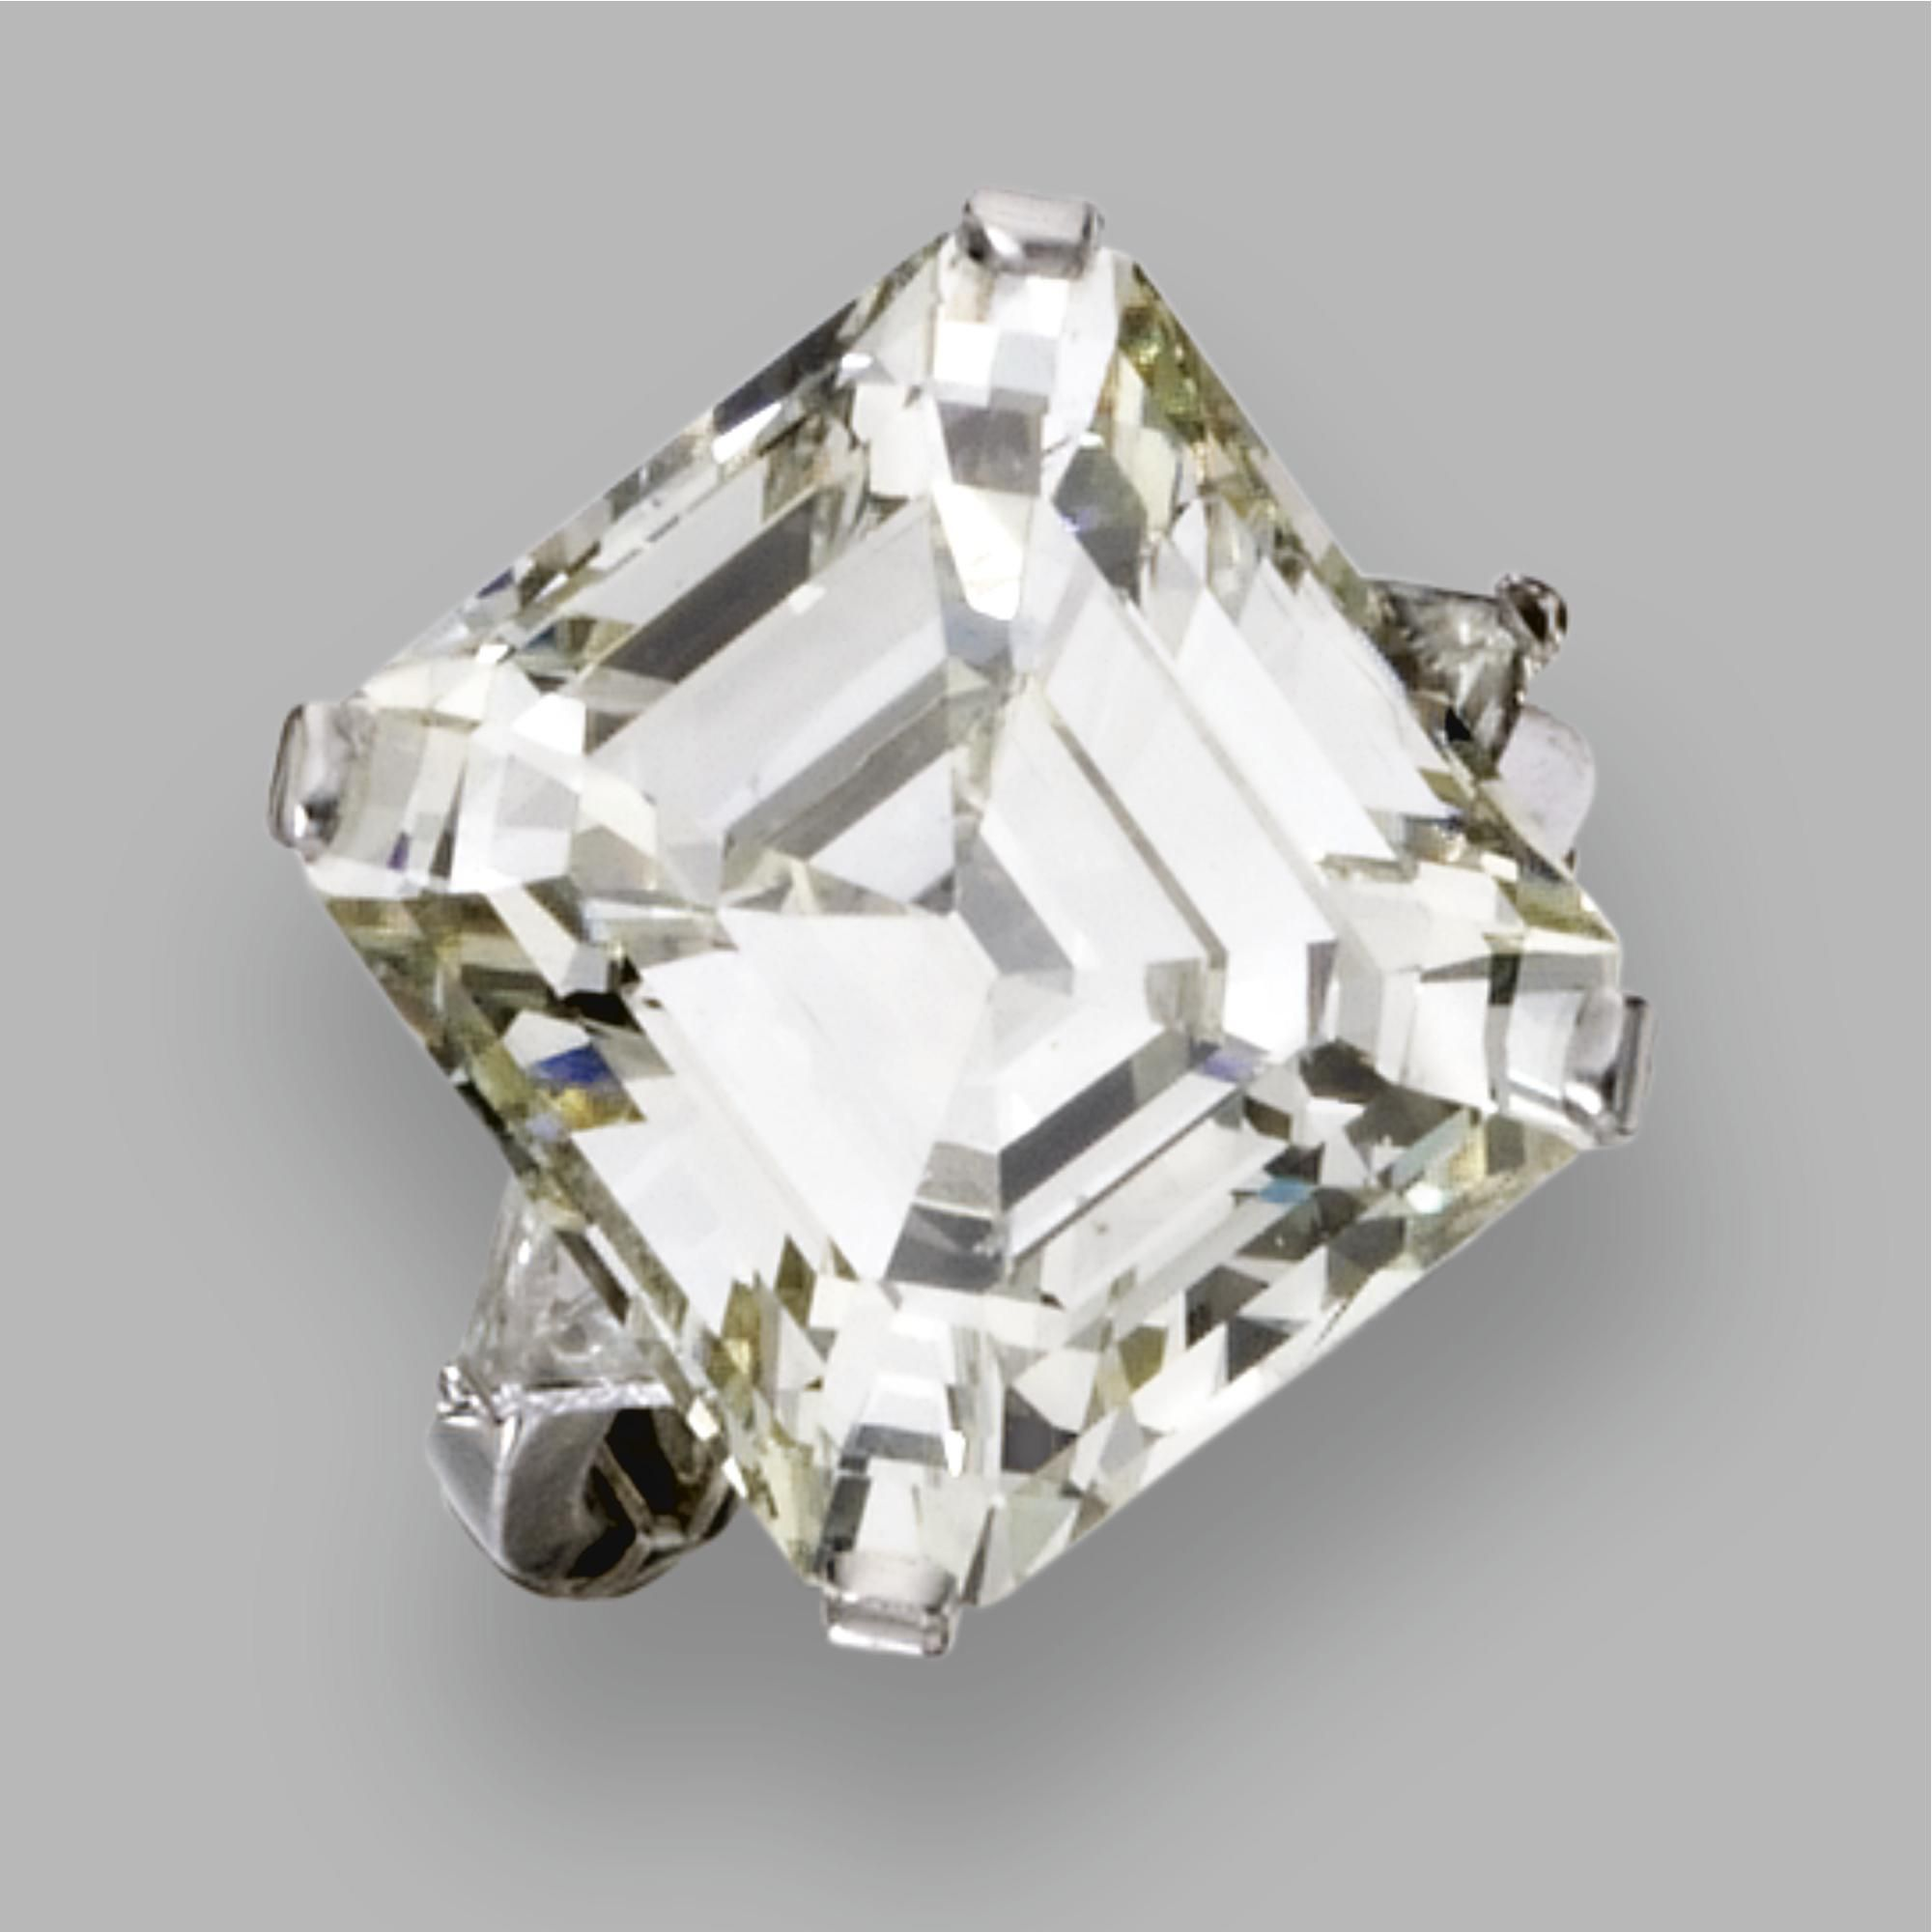 DIAMOND RING The emerald-cut diamond weighing 23.76 carats, flanked by 2 triangular-shaped diamonds weighing approximately .90 carat, mounted in platinum.